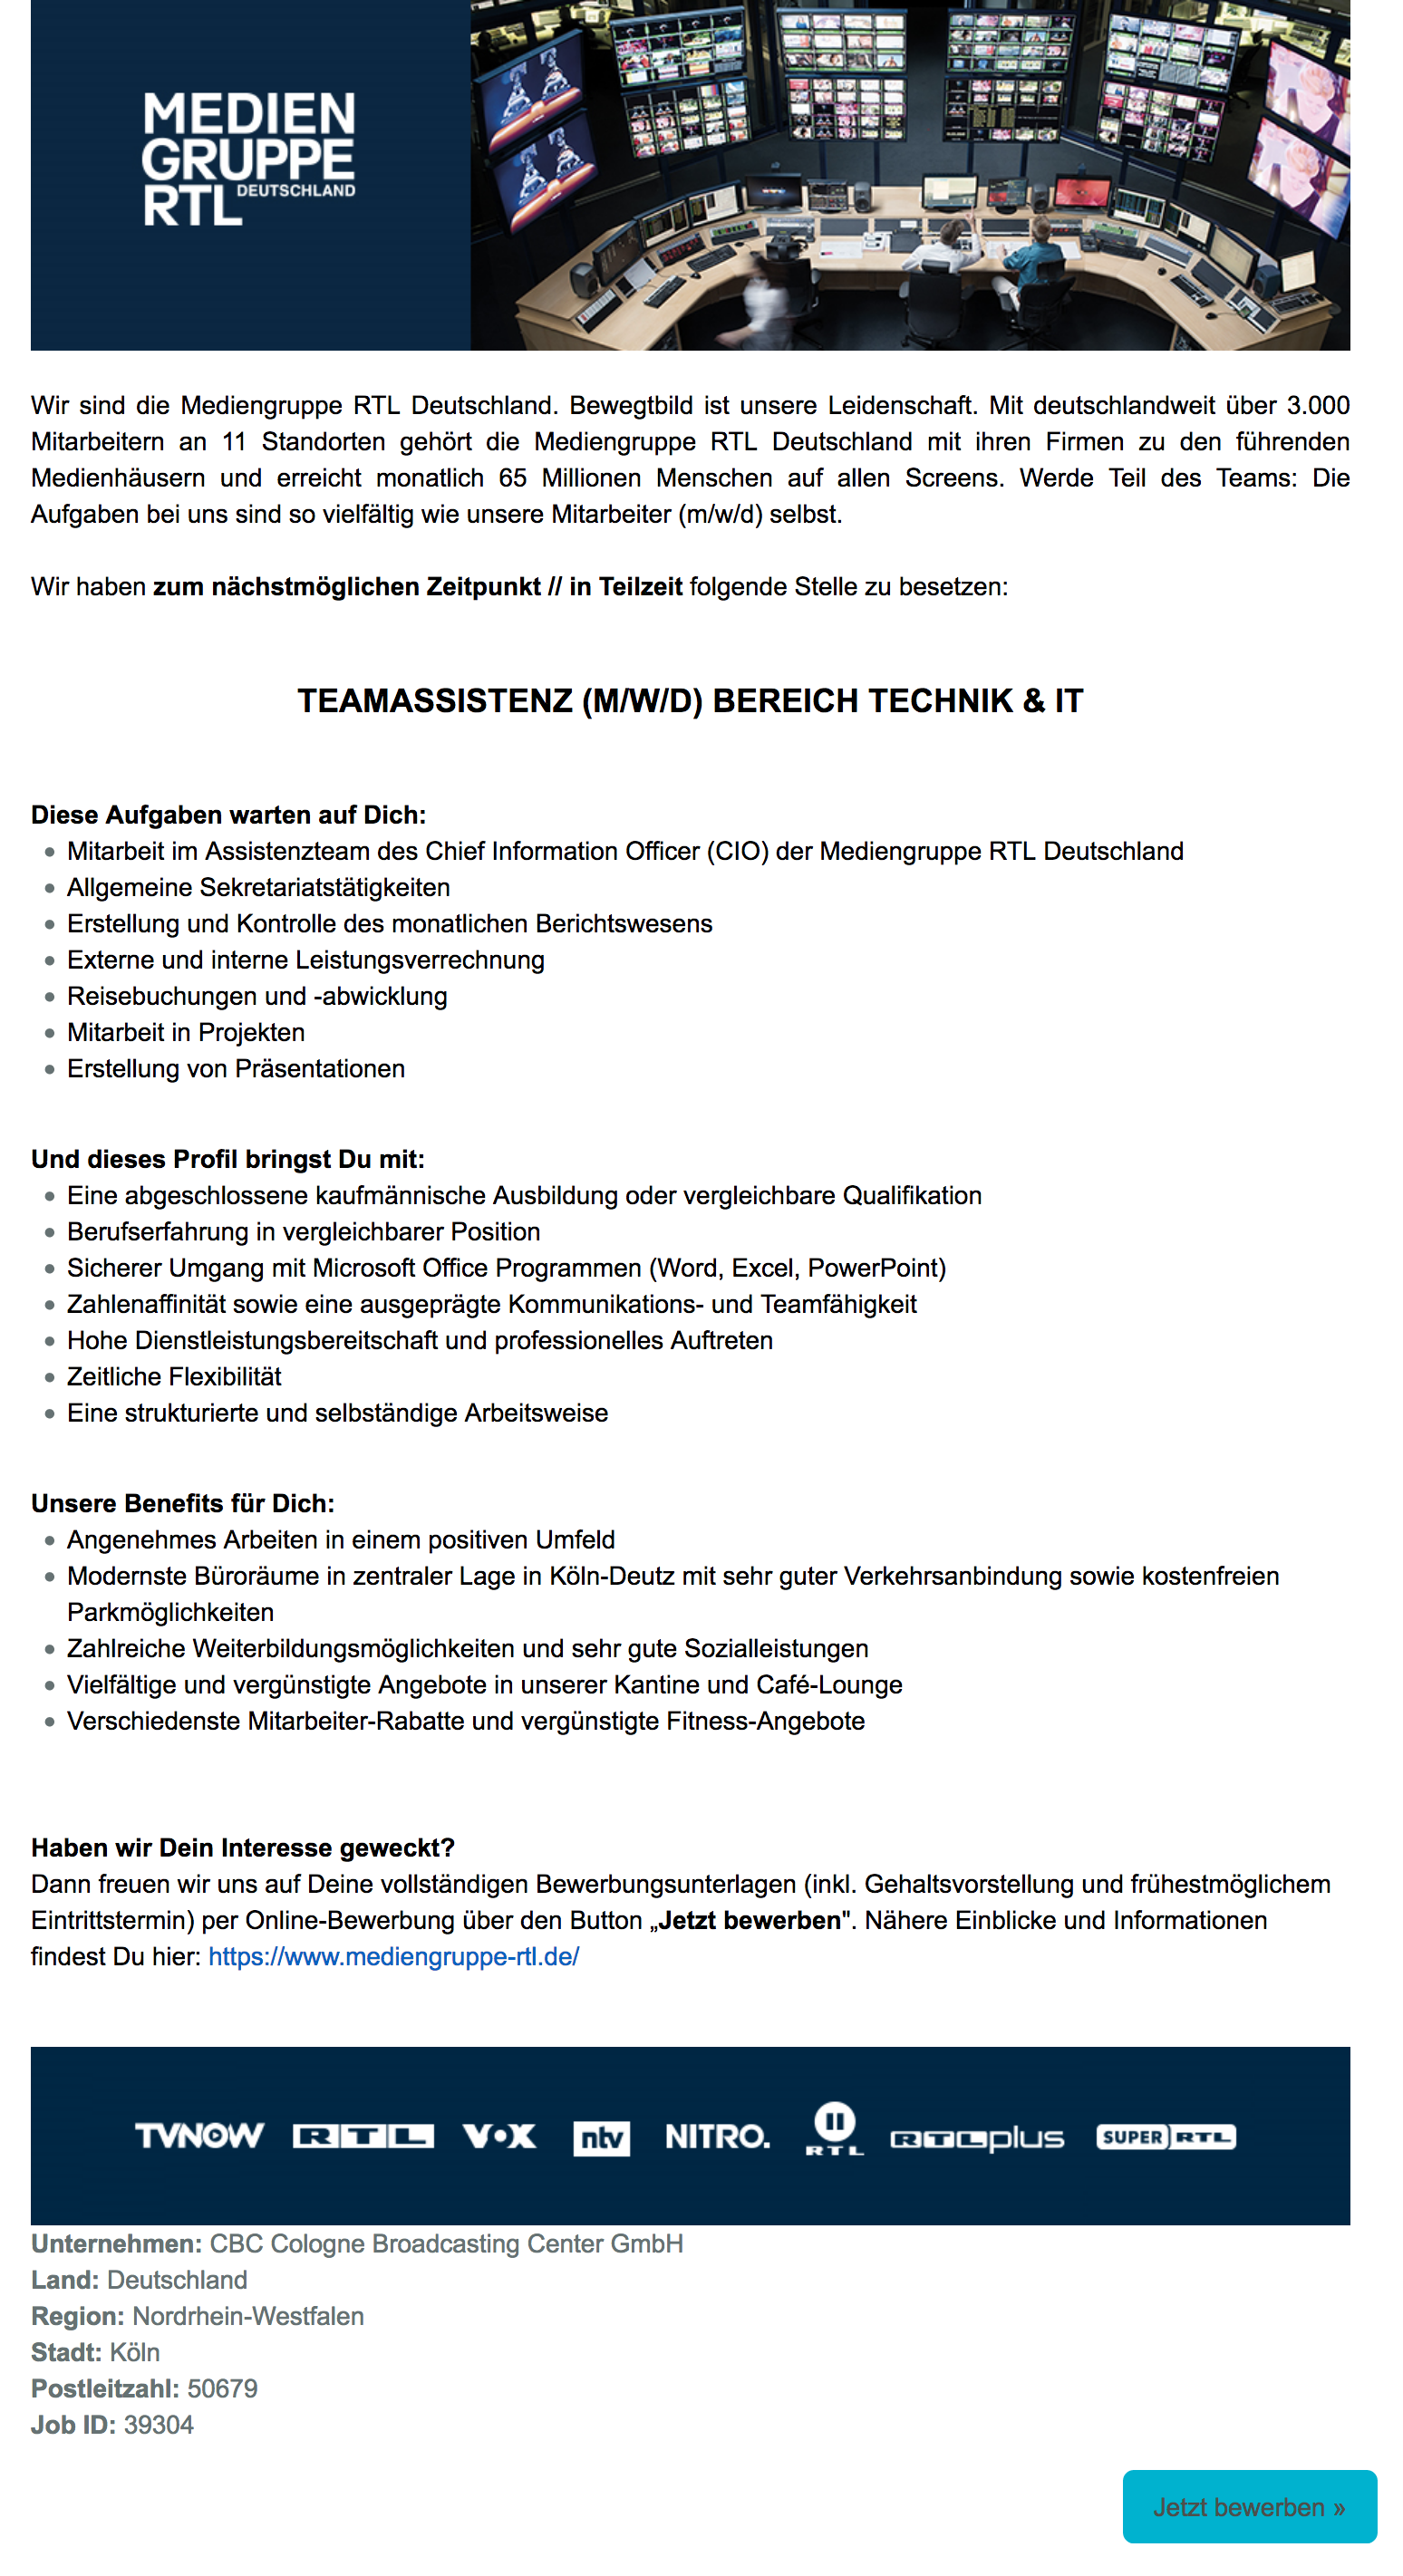 Teamassistenz (m/w/d) Bereich Technik & IT (CBC)